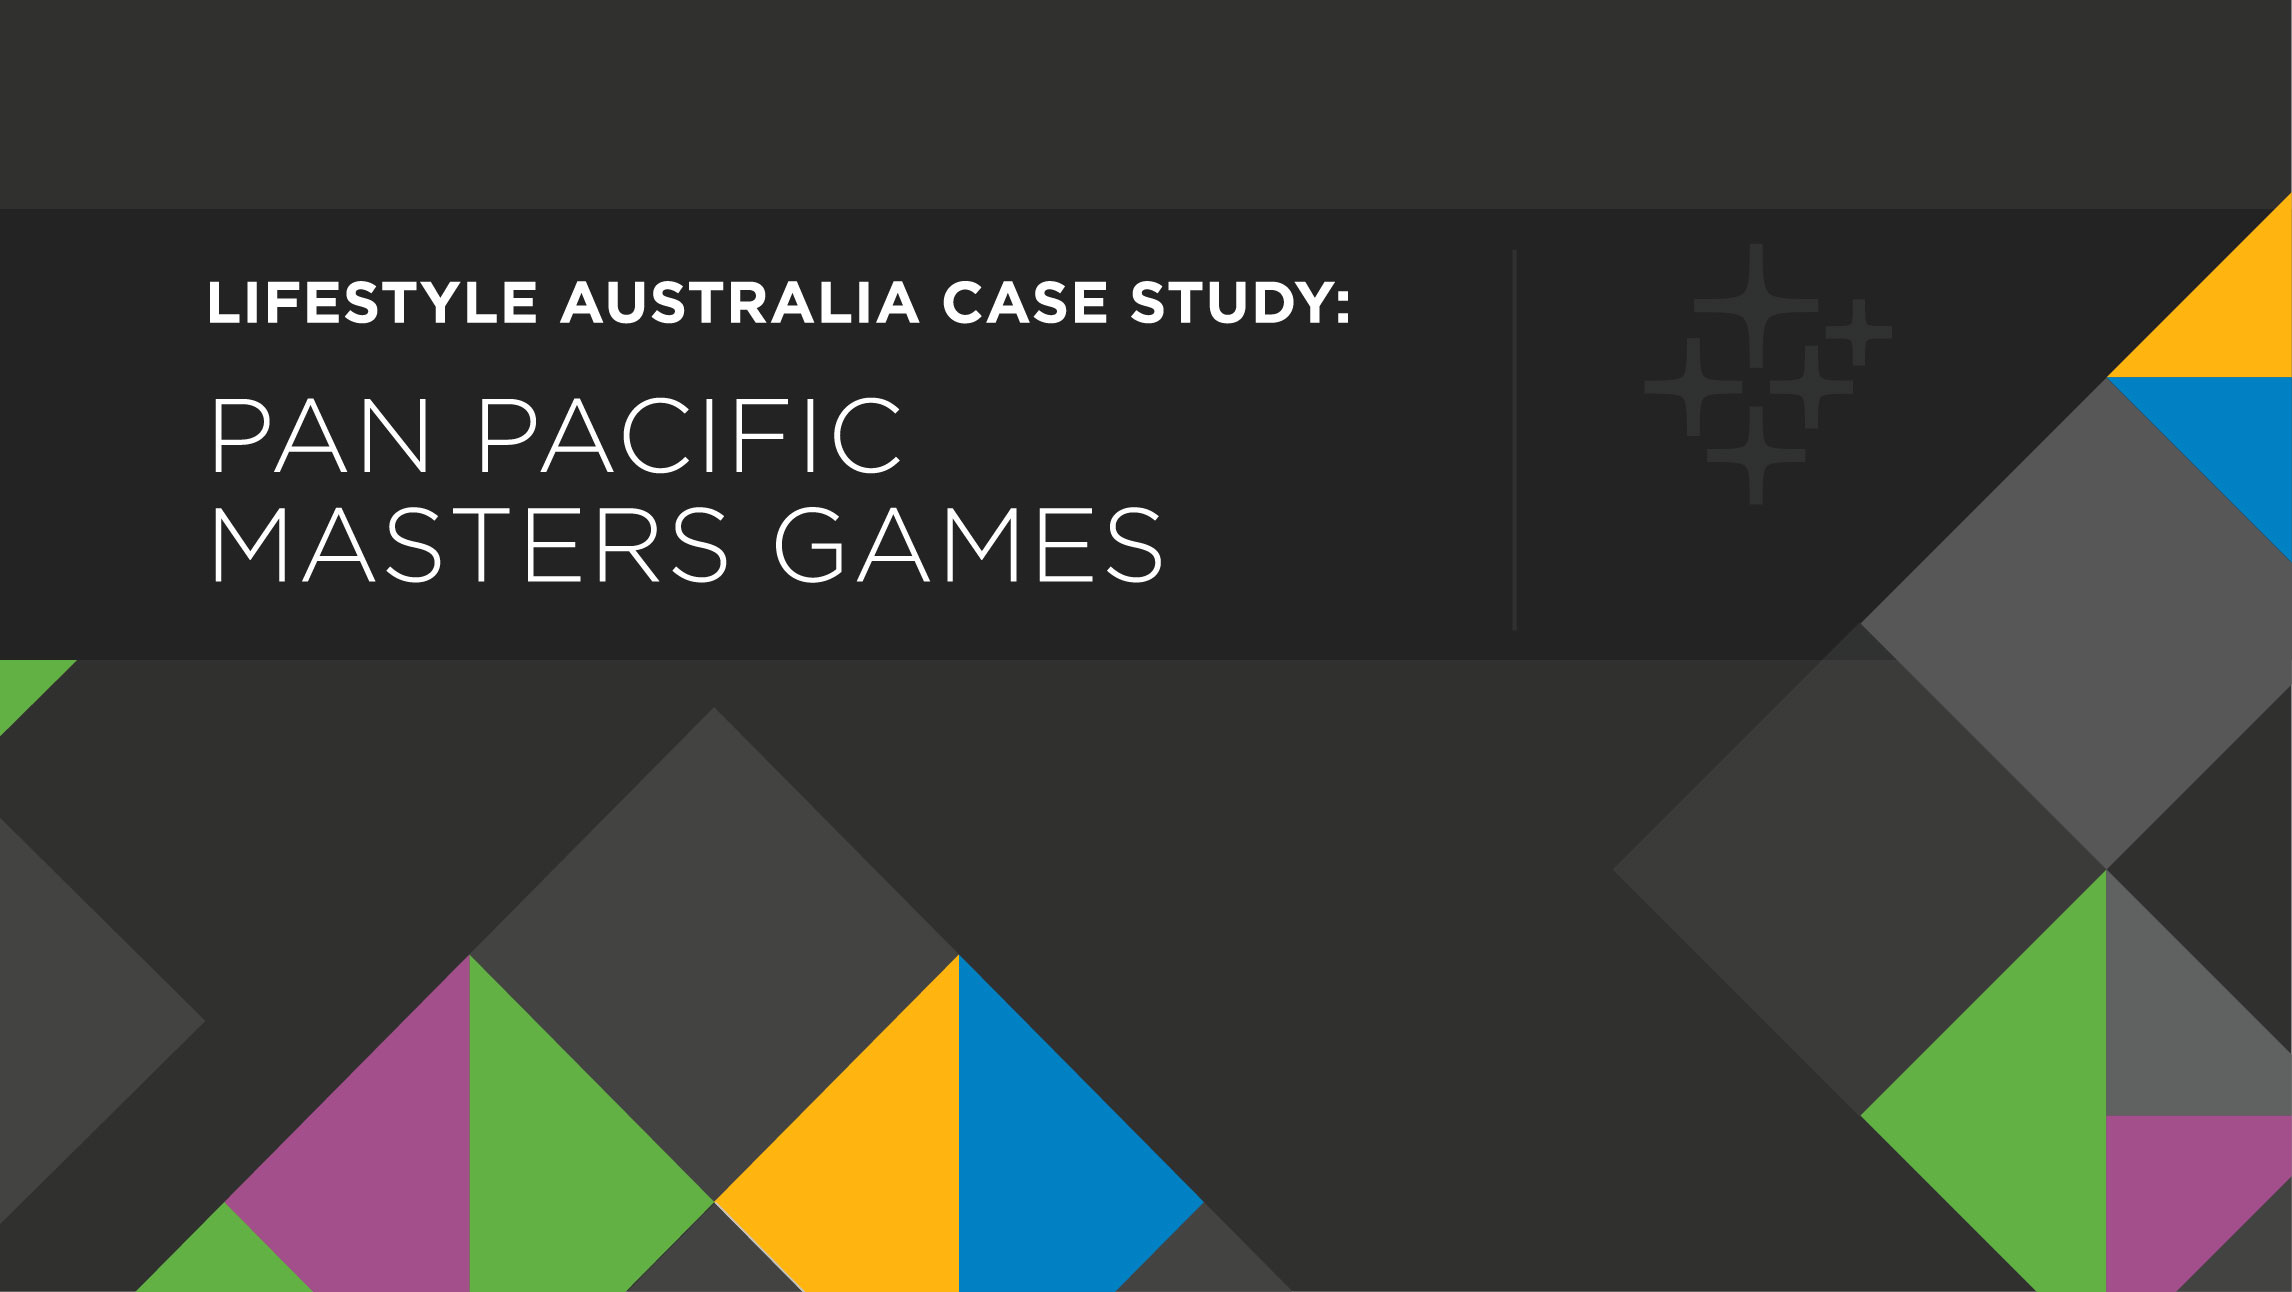 CASE STUDY: PAN PACIFIC MASTERS GAMES 2